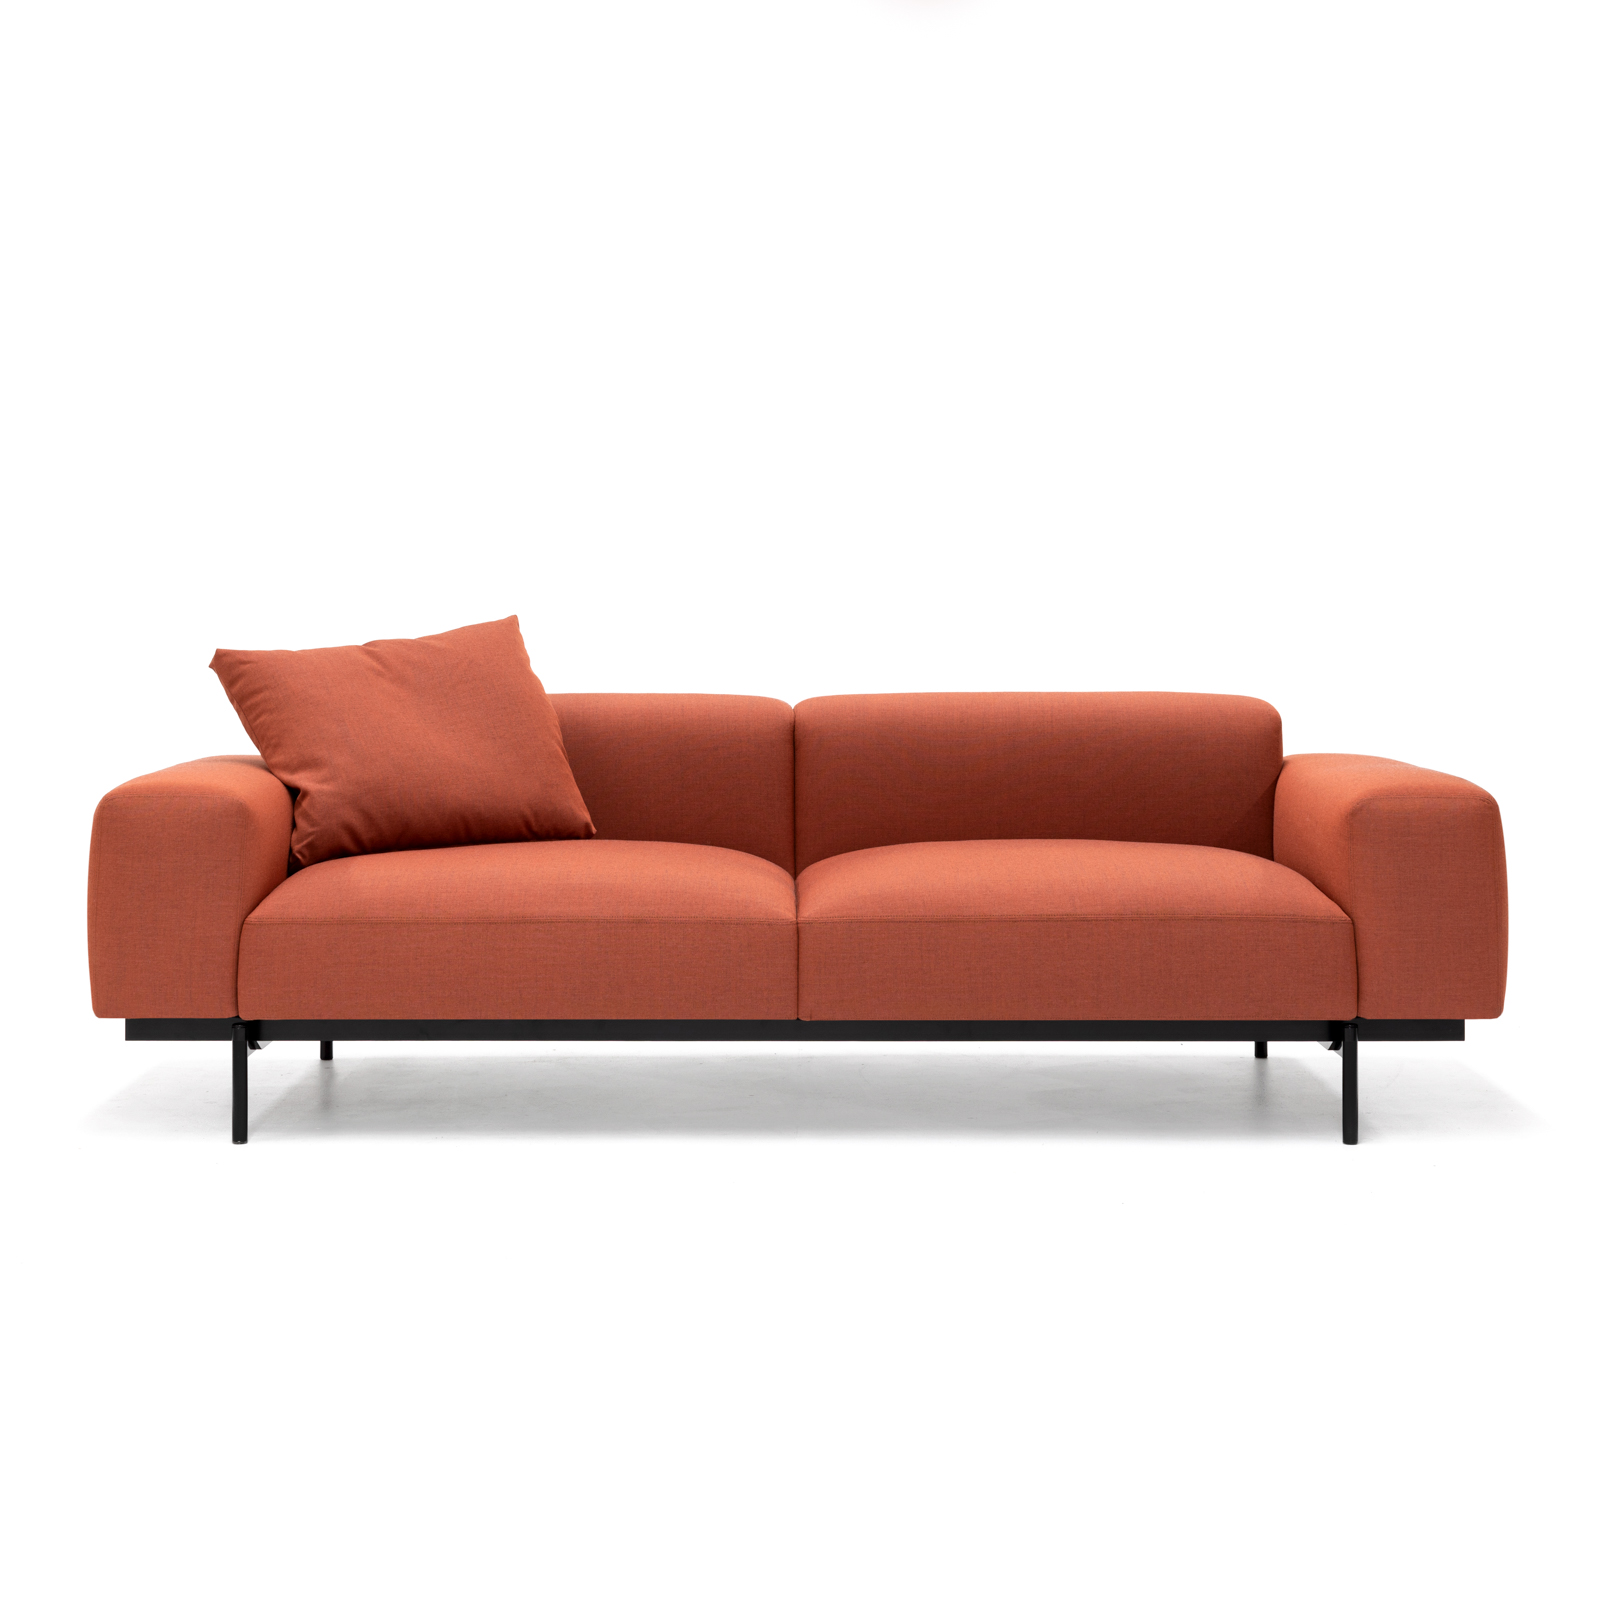 Permanent Future Perry Sofa 2.5 Seater Native Red Ochre Large Cushion Pf Sf Pr 2.5 Nro Front View